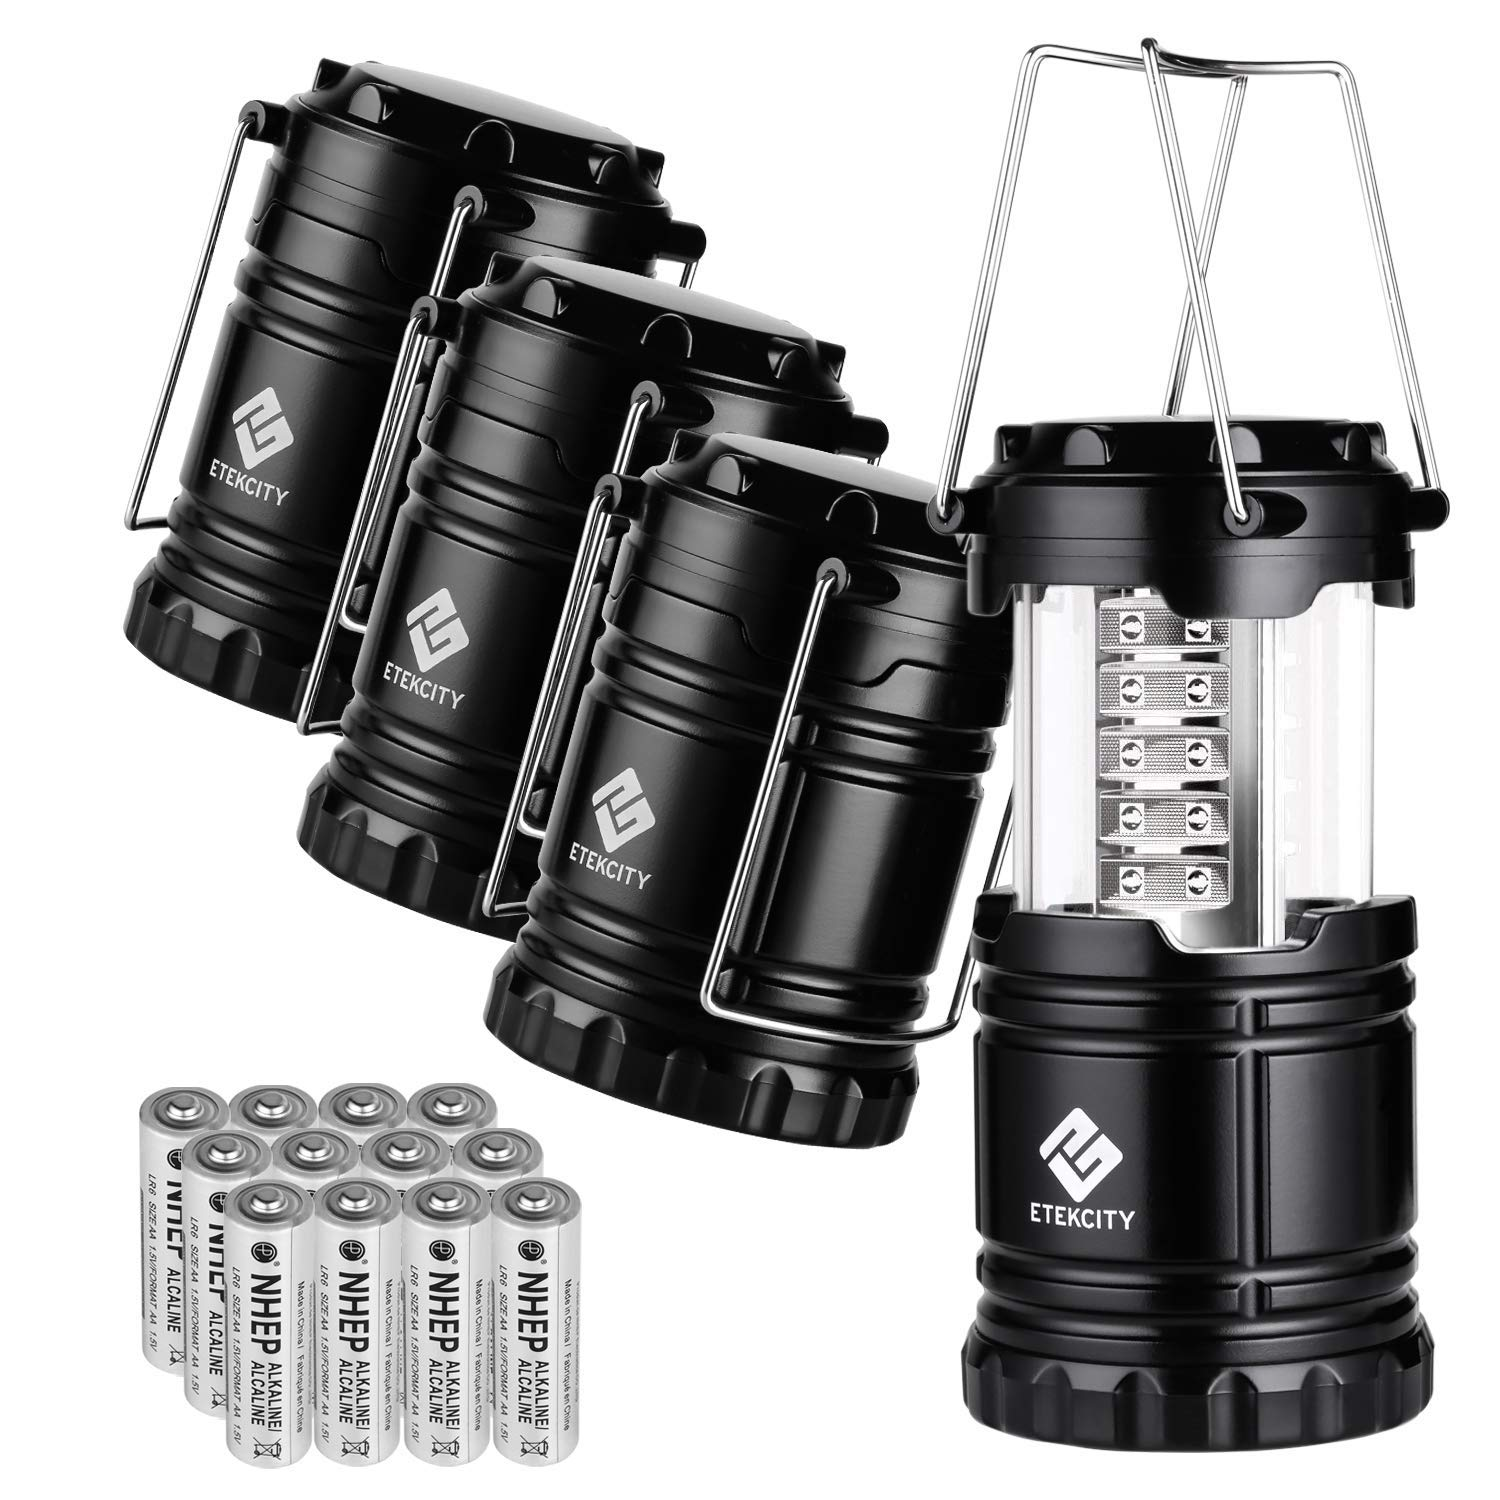 Etekcity 4 Pack Portable LED Camping Lantern Flashlight